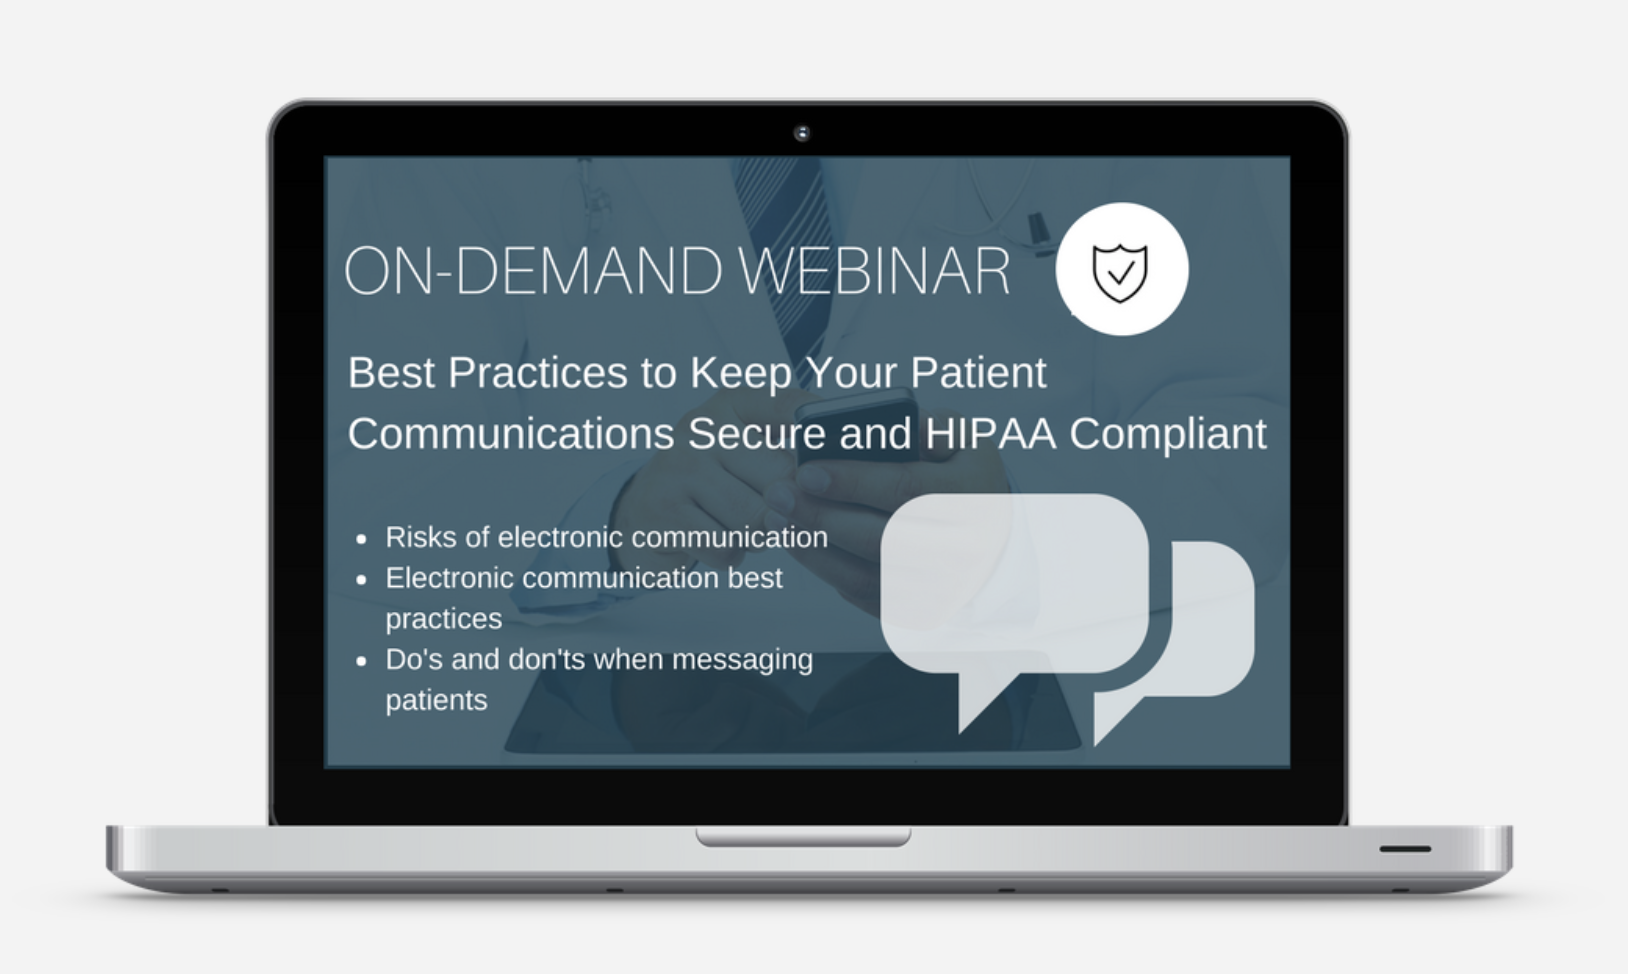 How to Keep Patient Communication Secure and HIPAA Compliant